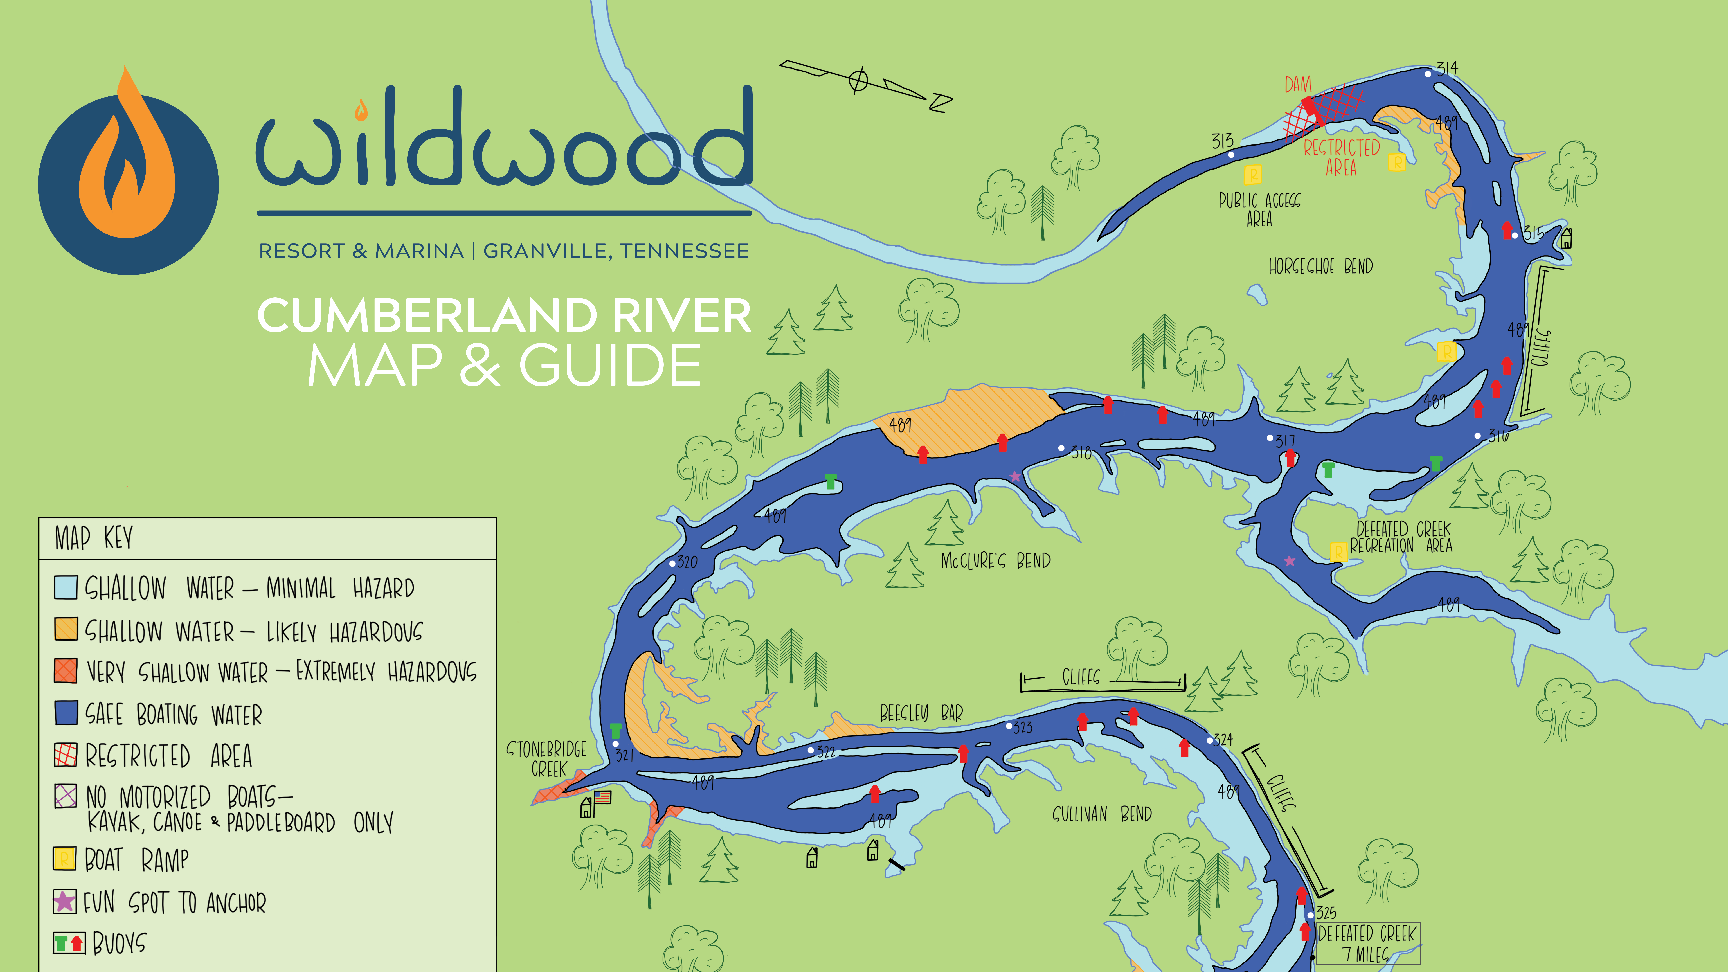 hand drawn map and guide of the Cumberland River